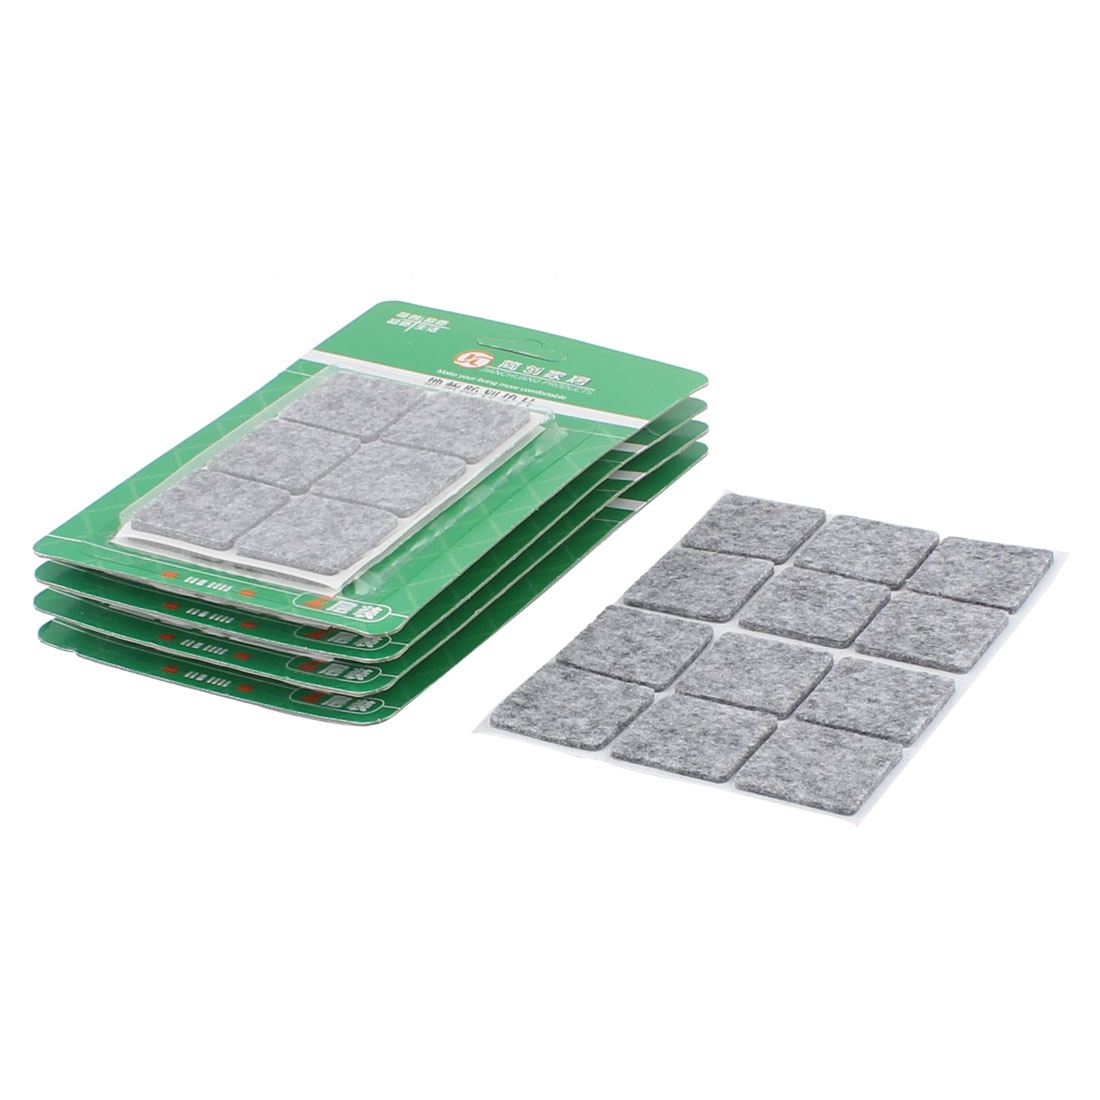 Table Chair Legs Square Anti Slip Furniture Felt Pads Covers Protector Gray 30 x 30mm 60pcs